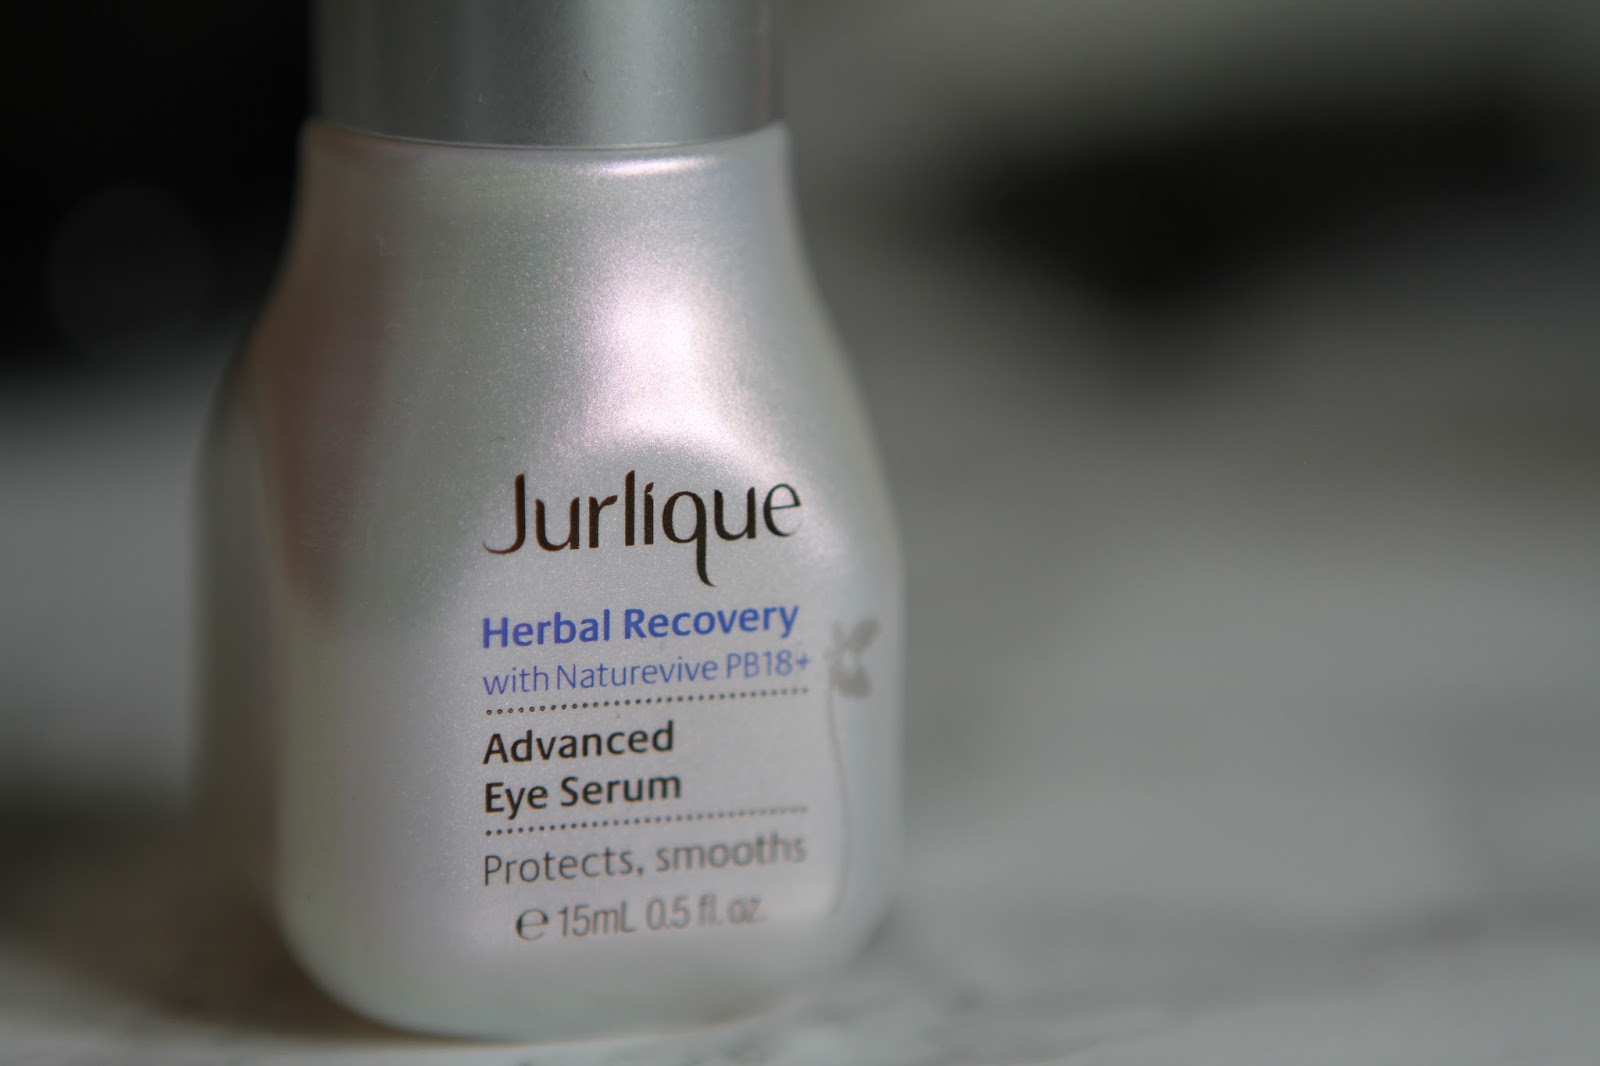 Jurlique Herbal recovery eye serum